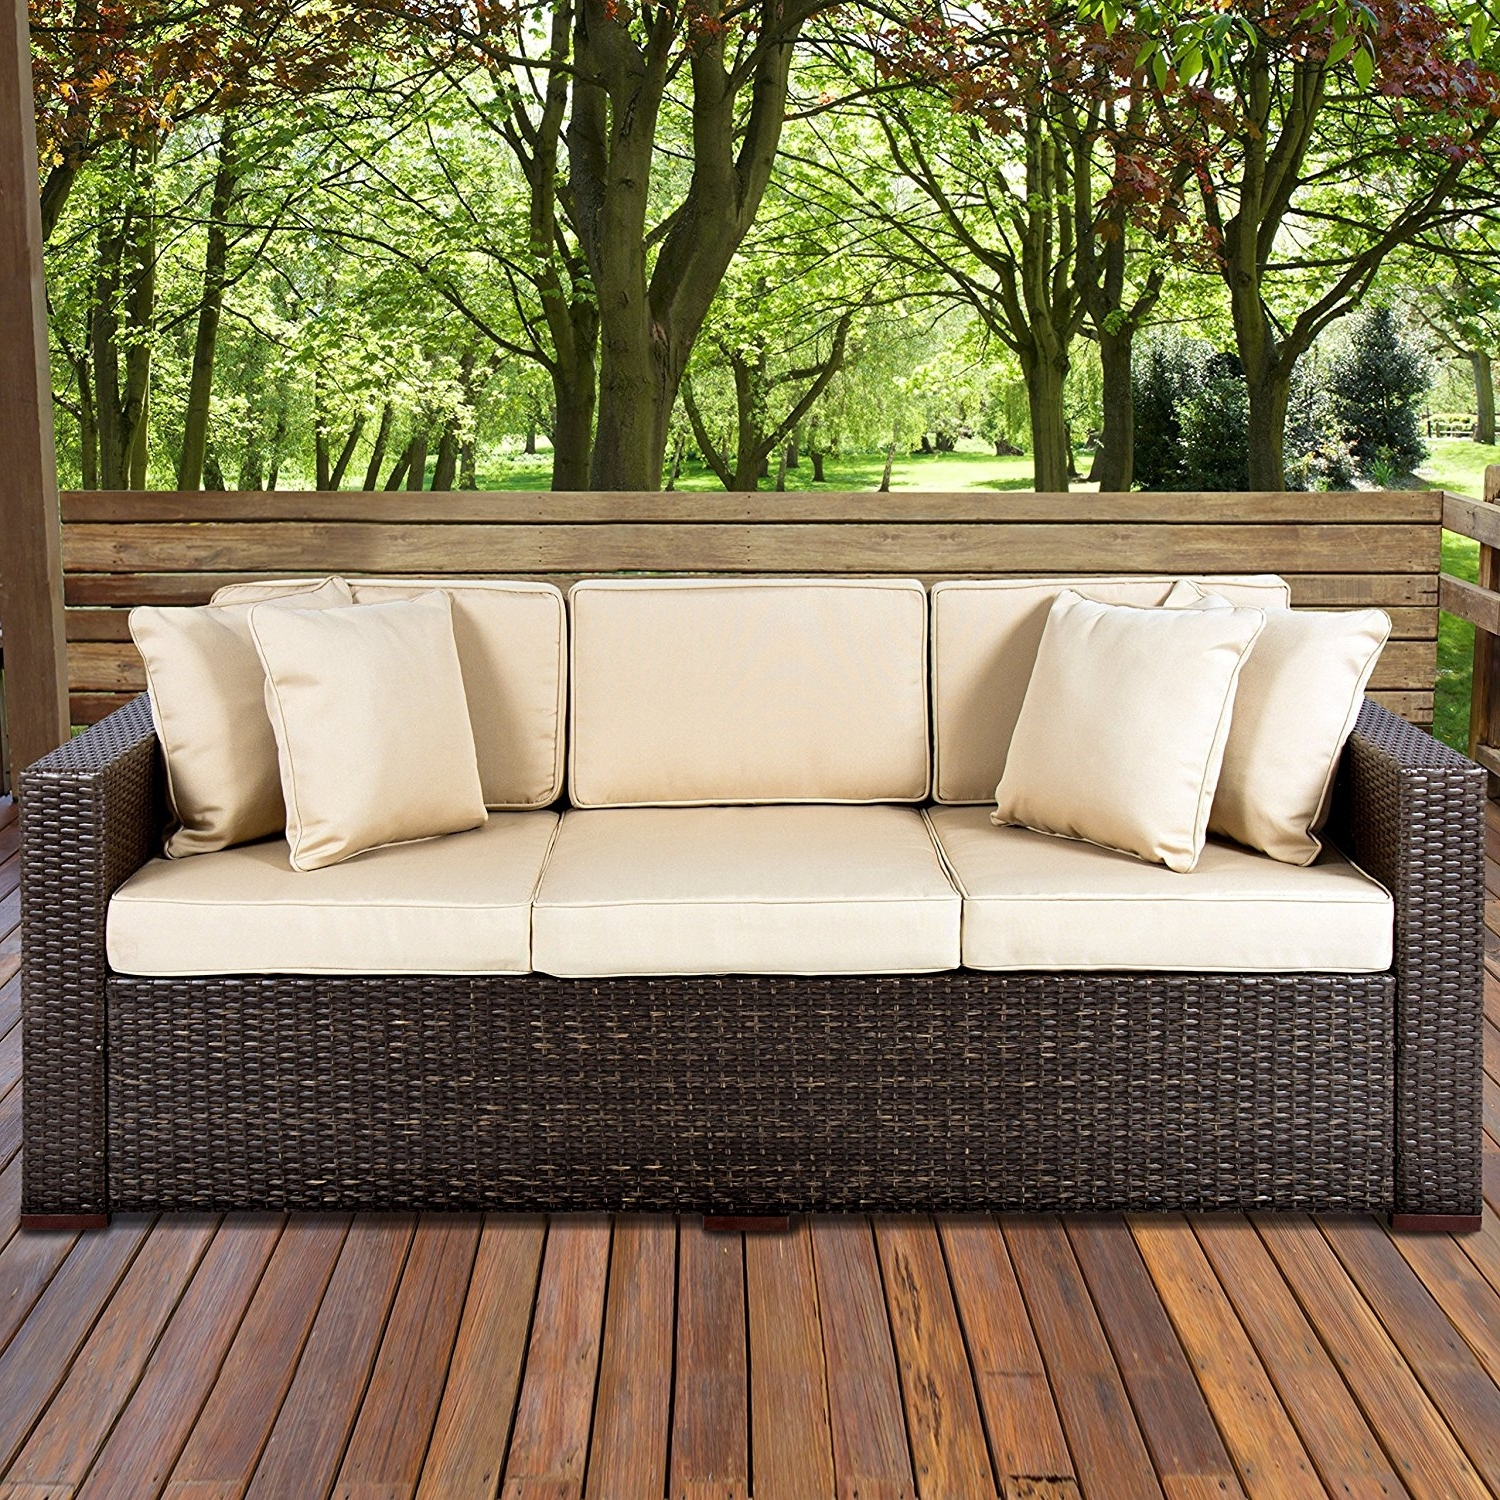 Most Current Vancouver Bc Canada Sectional Sofas Within Sofa : Patio Furniture White Wicker Outdoor Furniture Wicker (View 8 of 20)